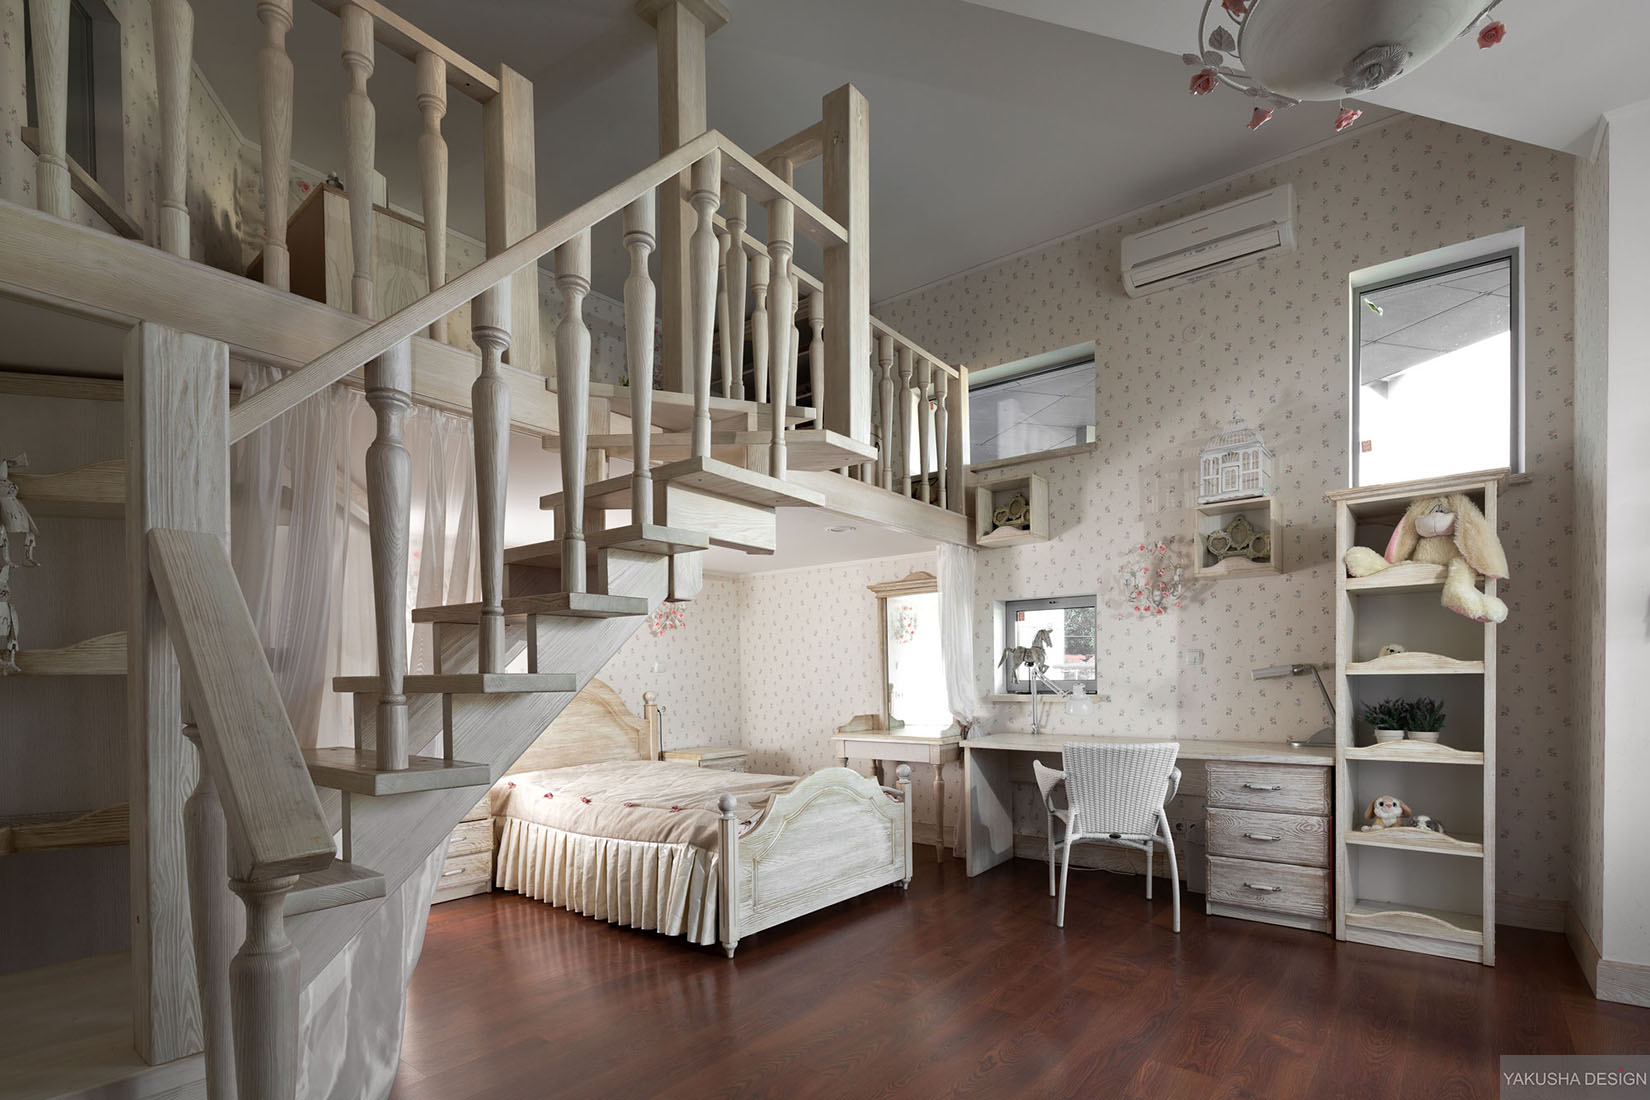 dreamy floral and white bedroom with mezzanine homework space and storage